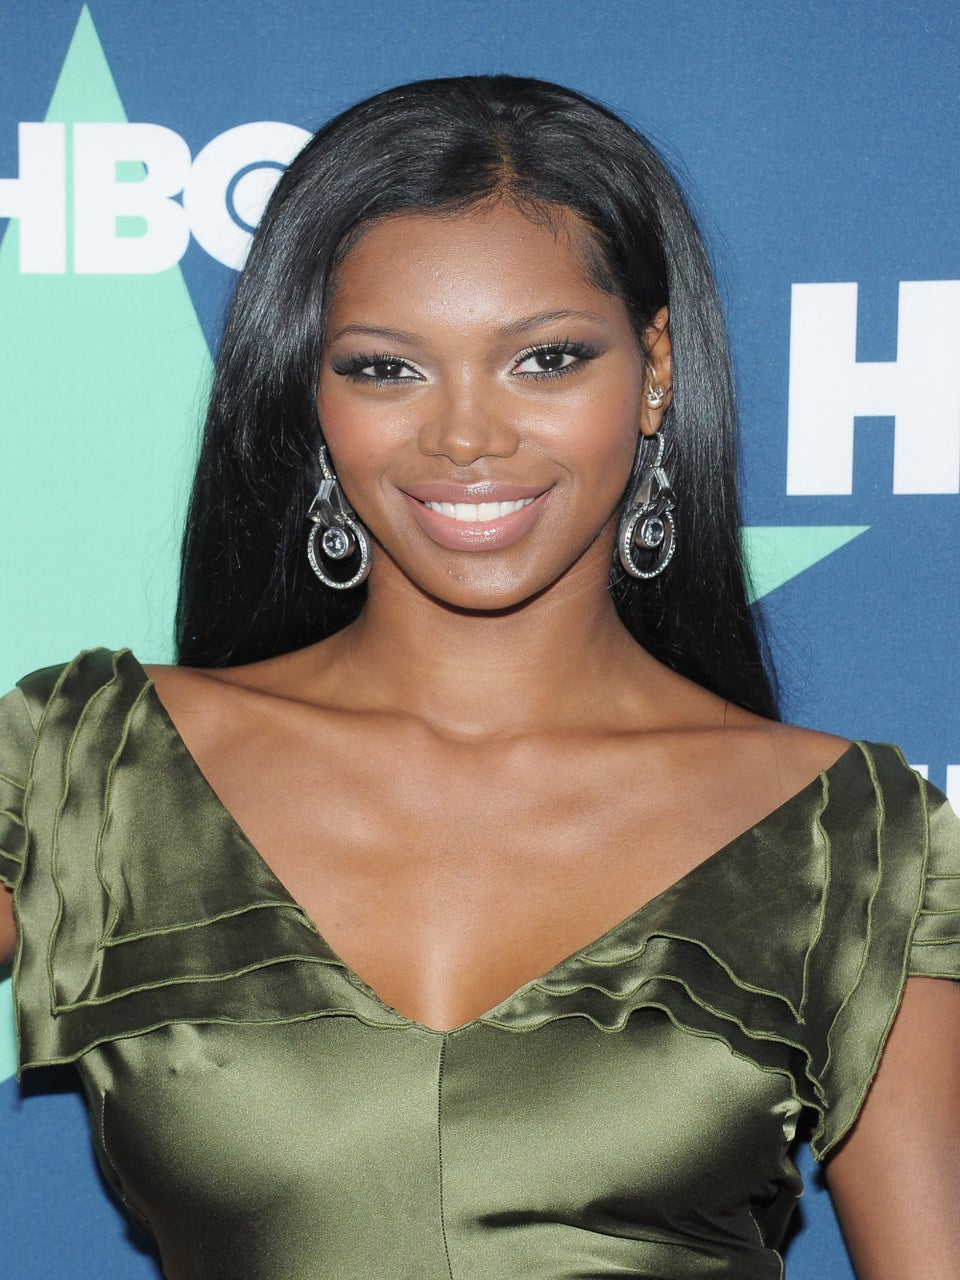 5 Questions with Jessica White on Celibacy, Dating, and Her Secret Lover